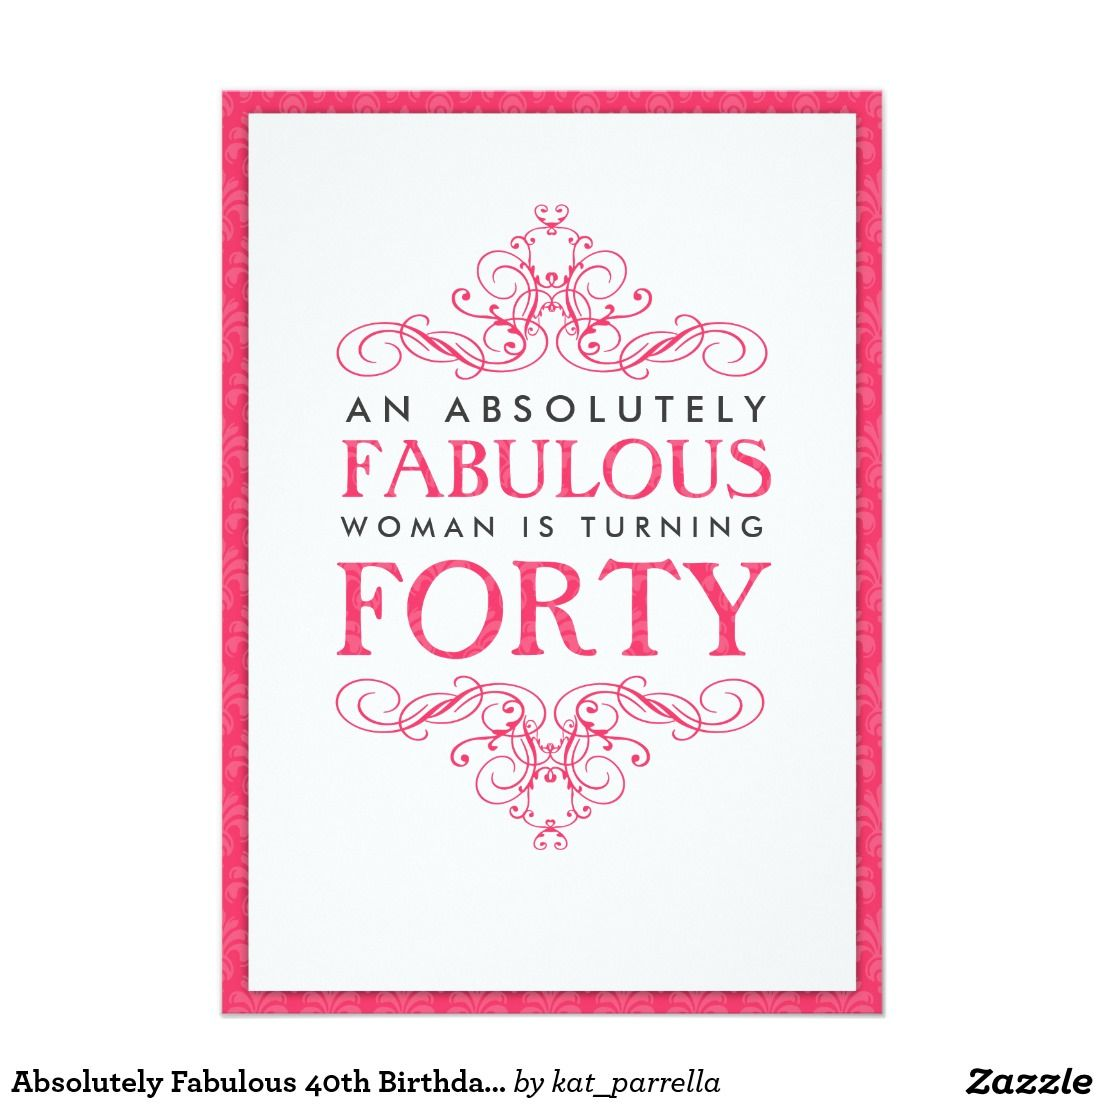 Absolutely fabulous 40th birthday party invitation birthday absolutely fabulous 40th birthday party invitation stopboris Image collections